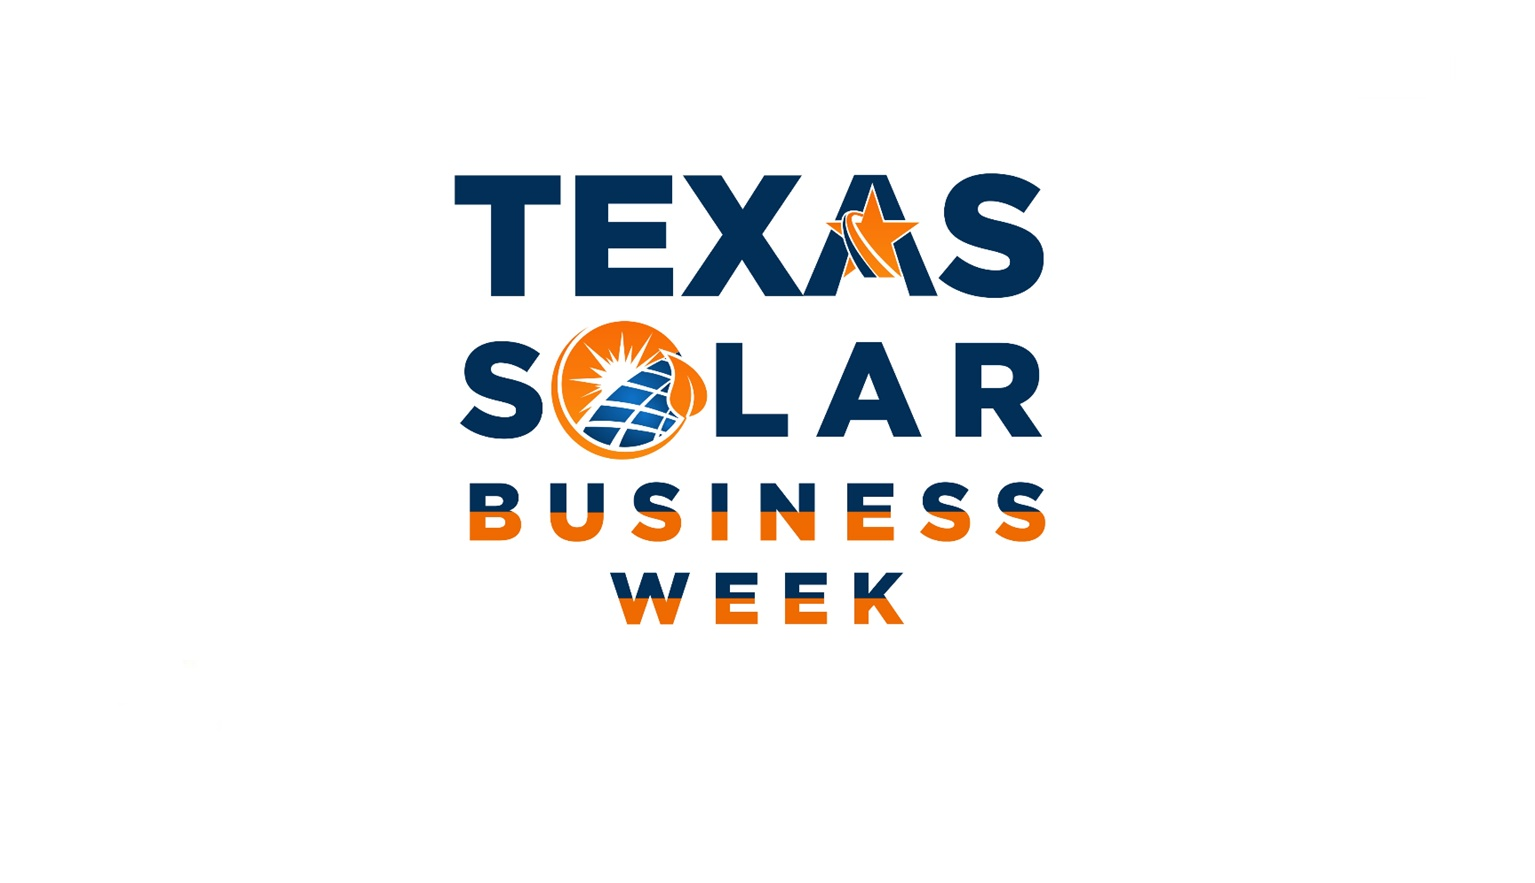 TEXAS SOLAR BUSINESS WEEK